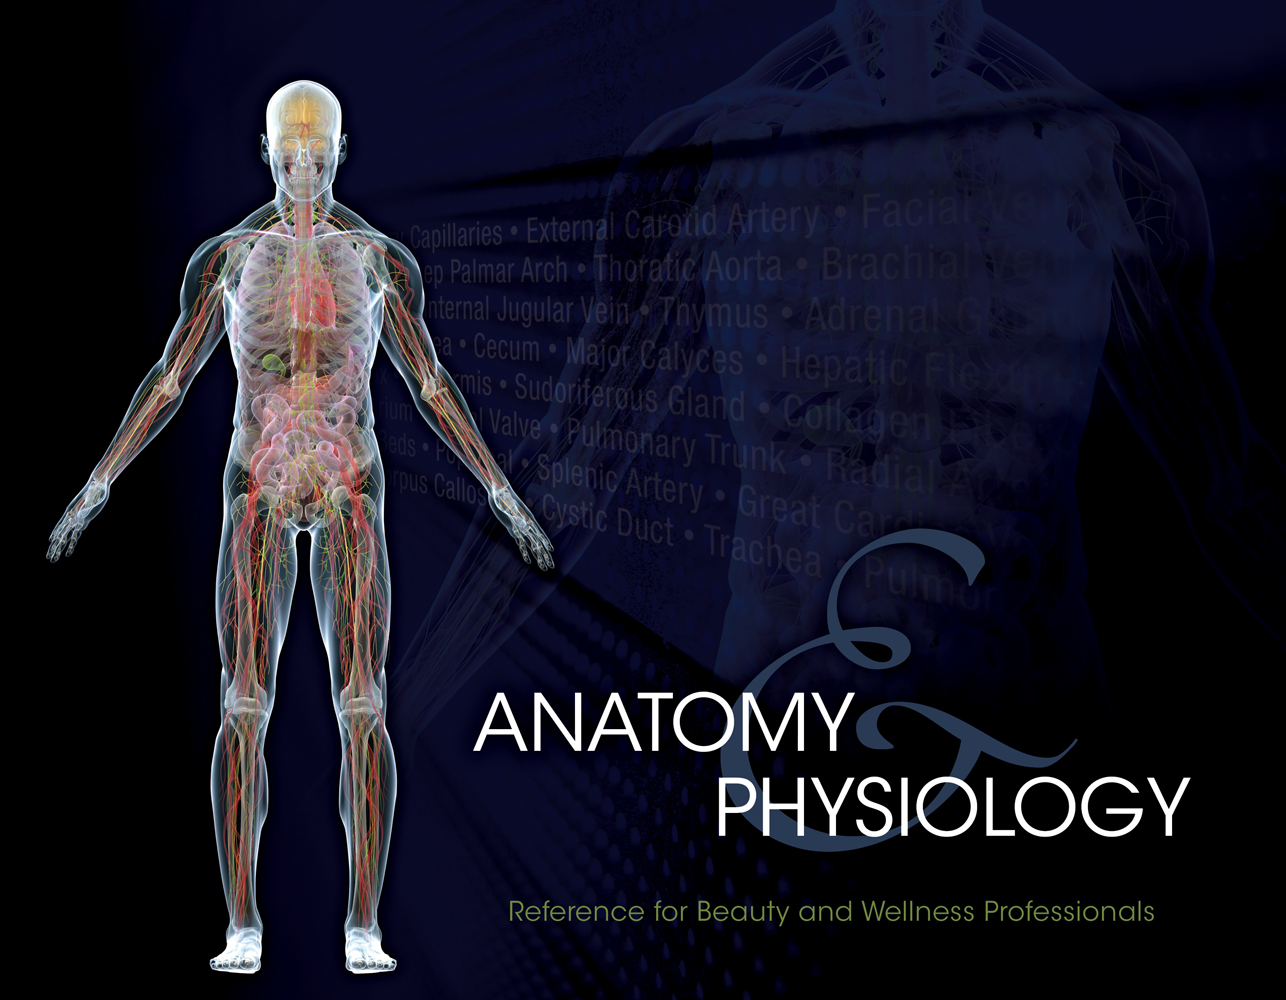 Student Reference for Anatomy & Physiology - 9781111642112 - Cengage